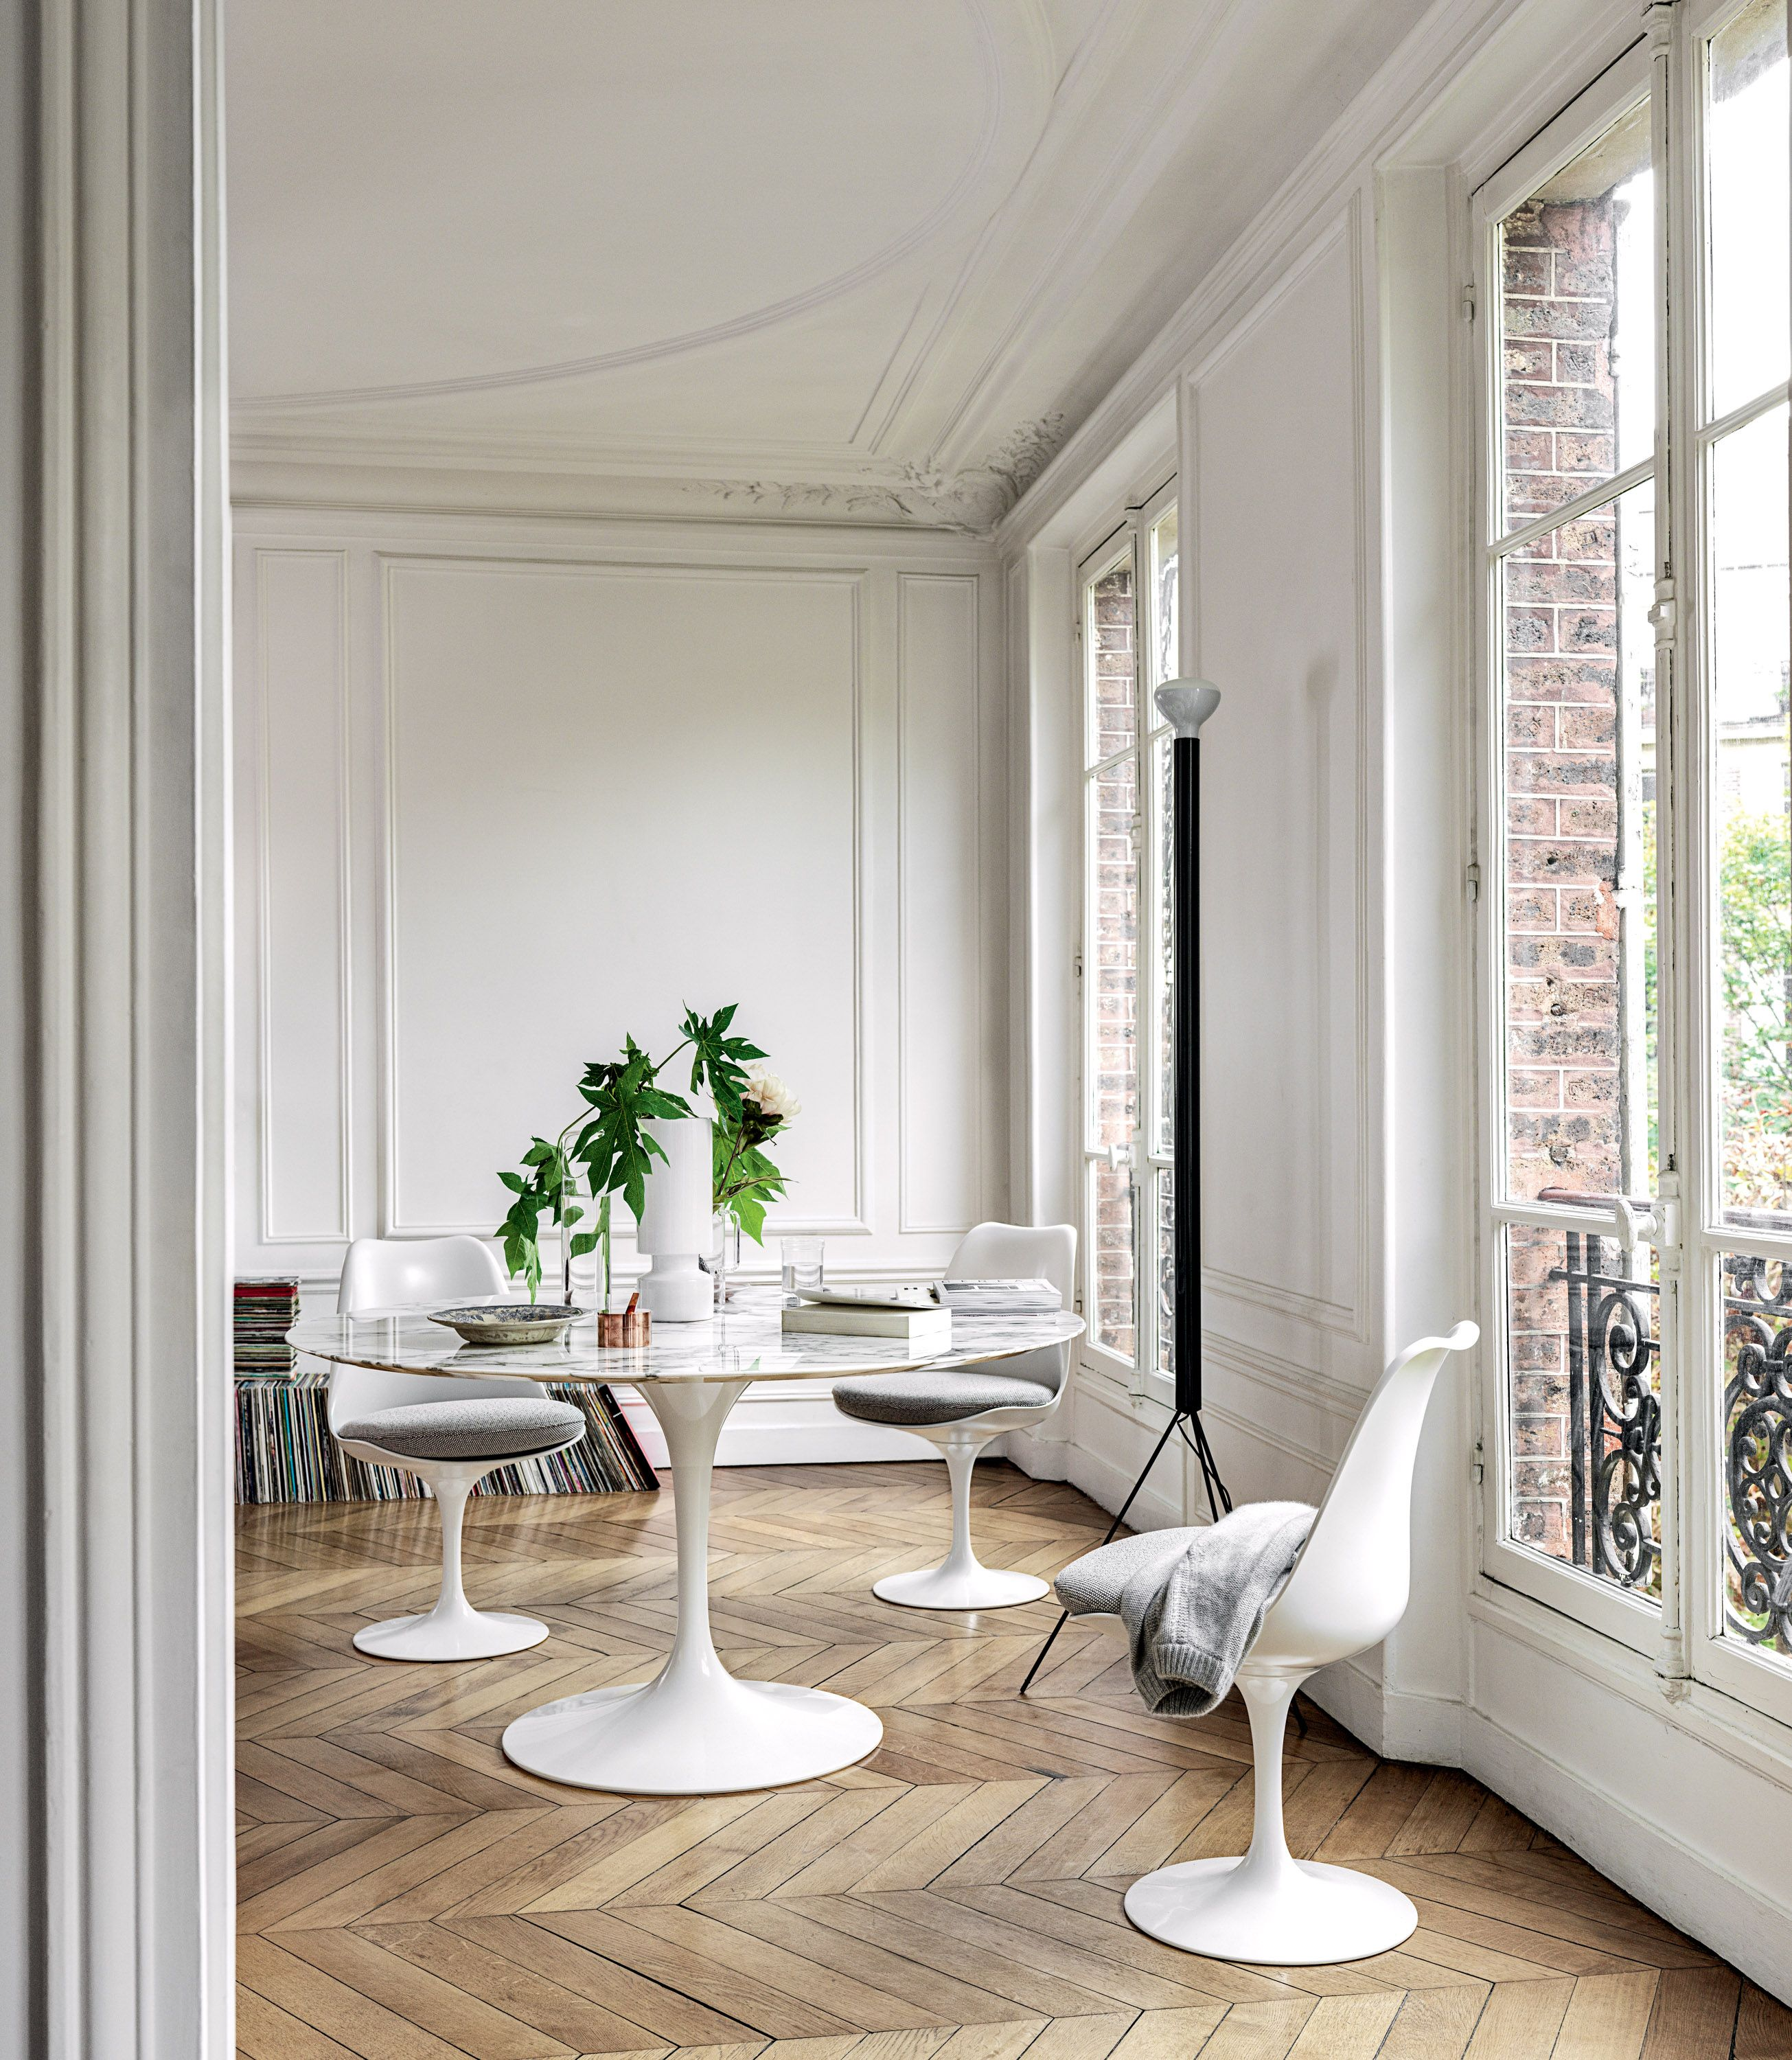 Saarinen Dining Table 47 Round Round Dining Room White Dining Room Sets Round Dining Room Sets